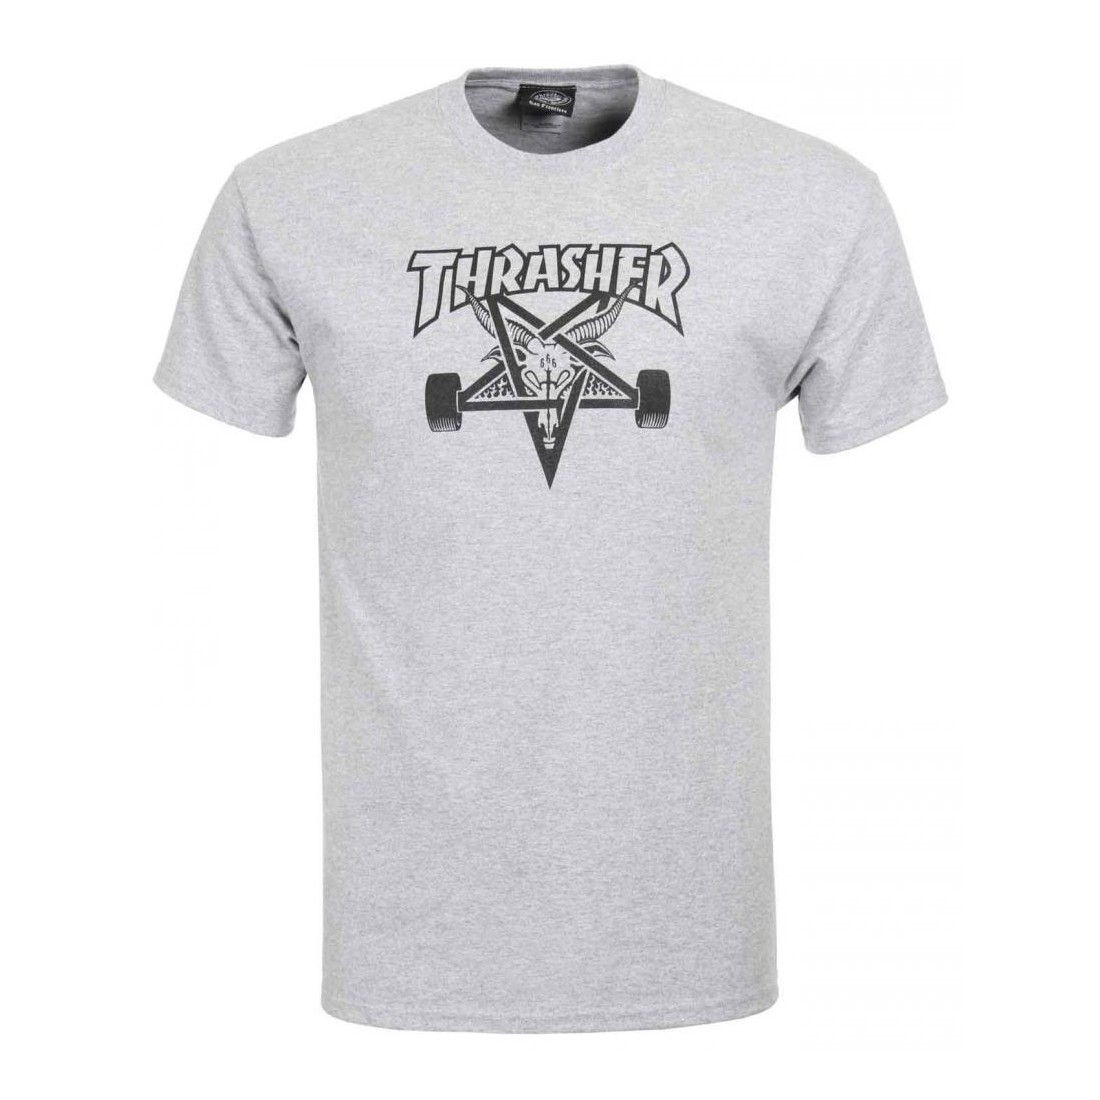 T Shirt Thrasher Skategoat Grey